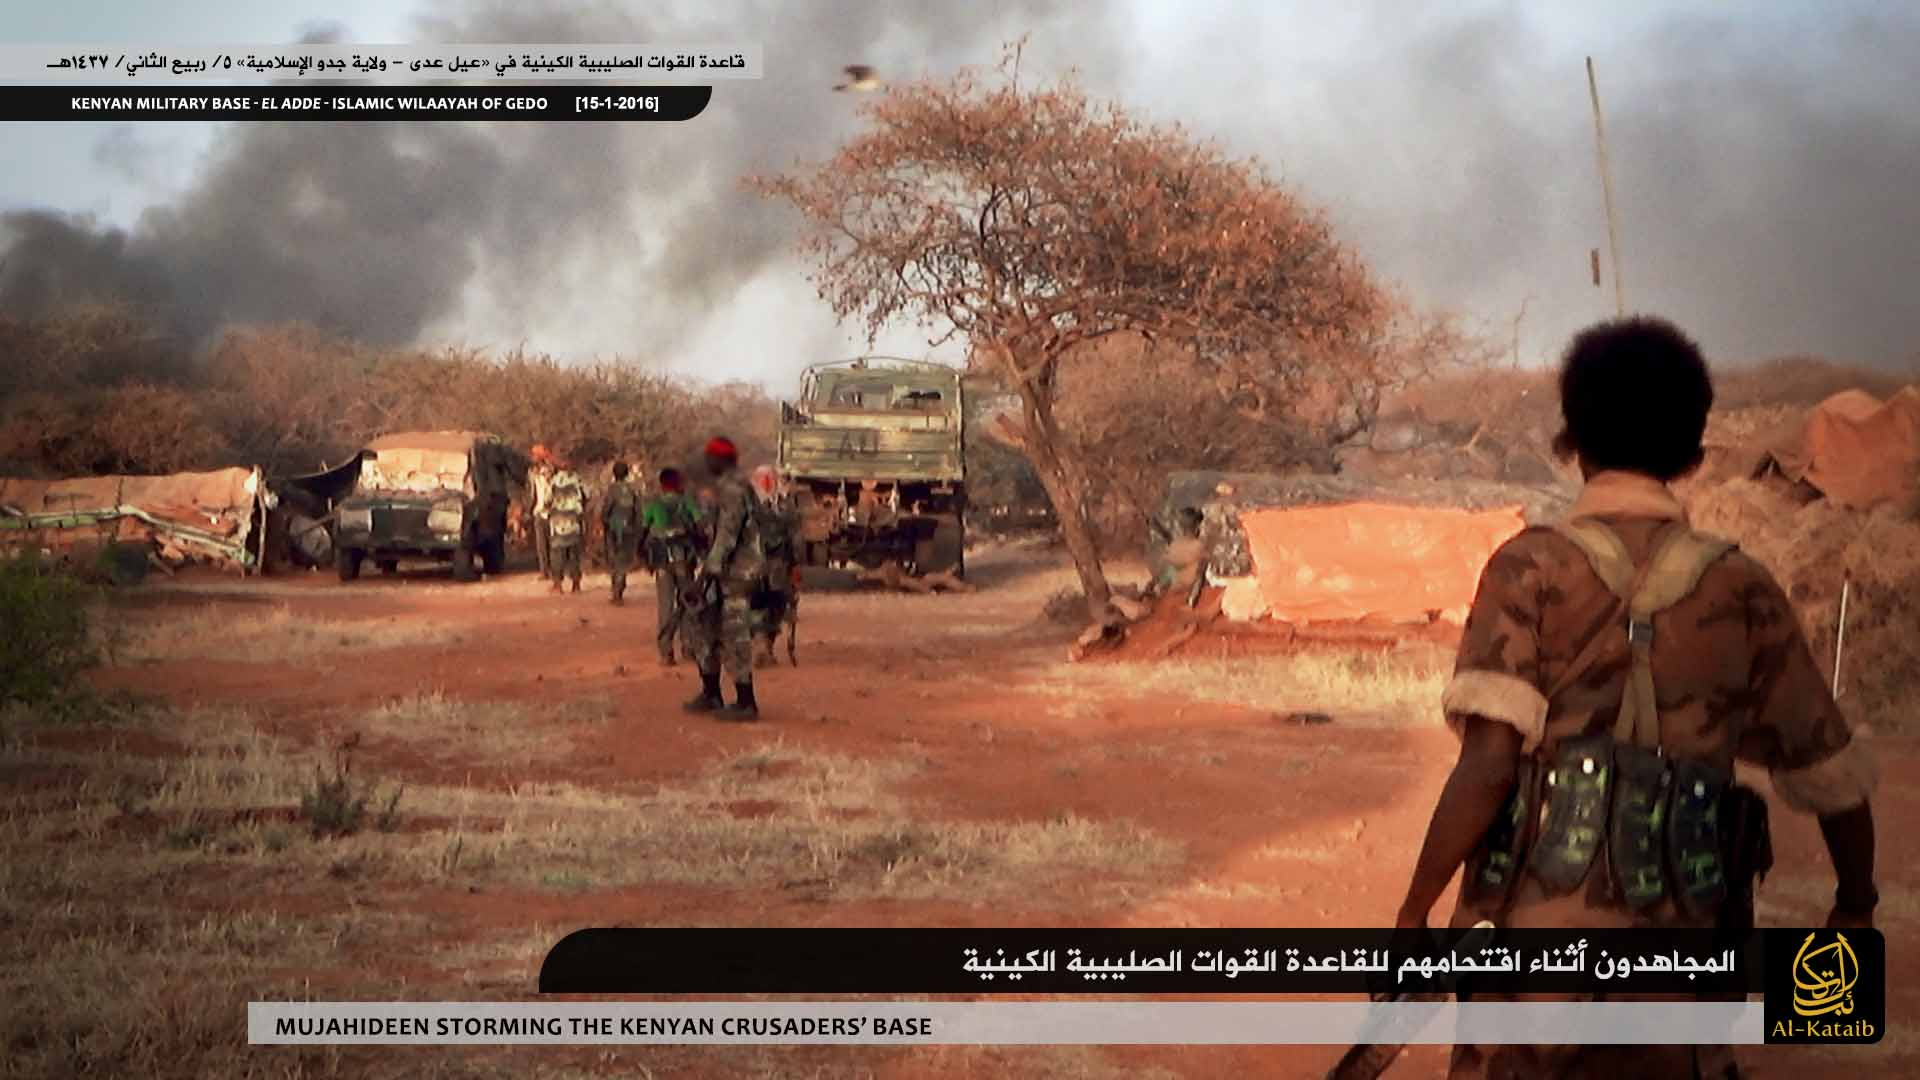 Shabaab releases photos from captured African Union base | FDD's